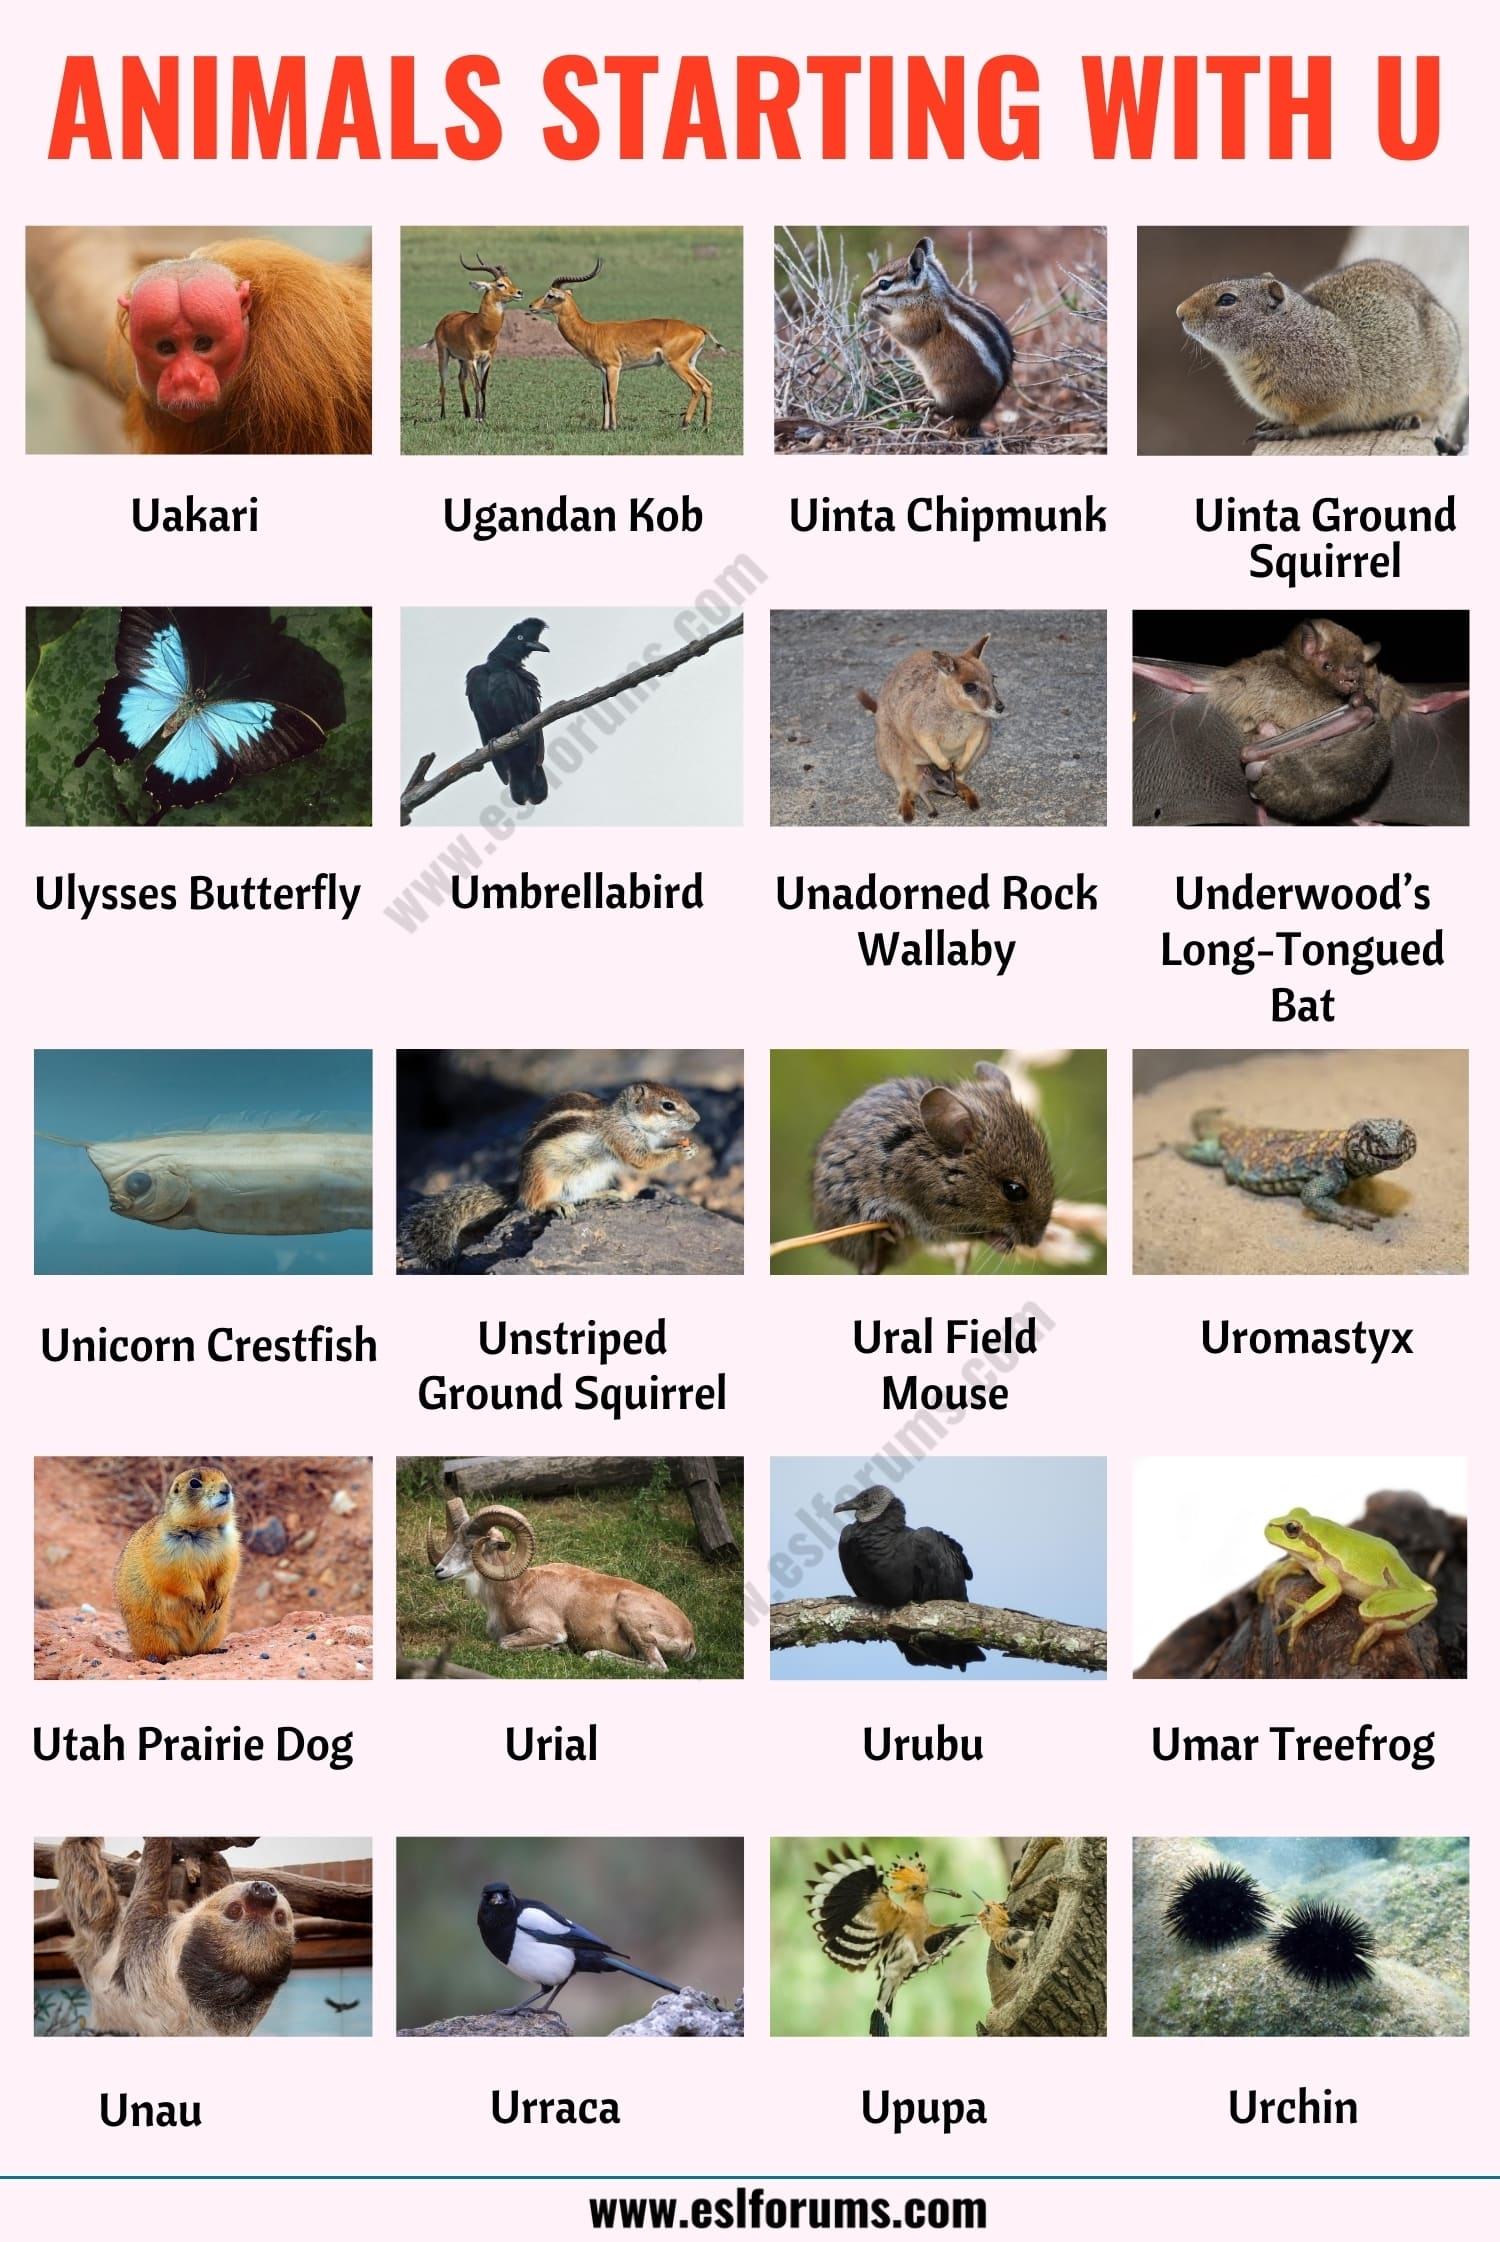 Animals that Start with U: List of 20 Animal Names that Start with U in English